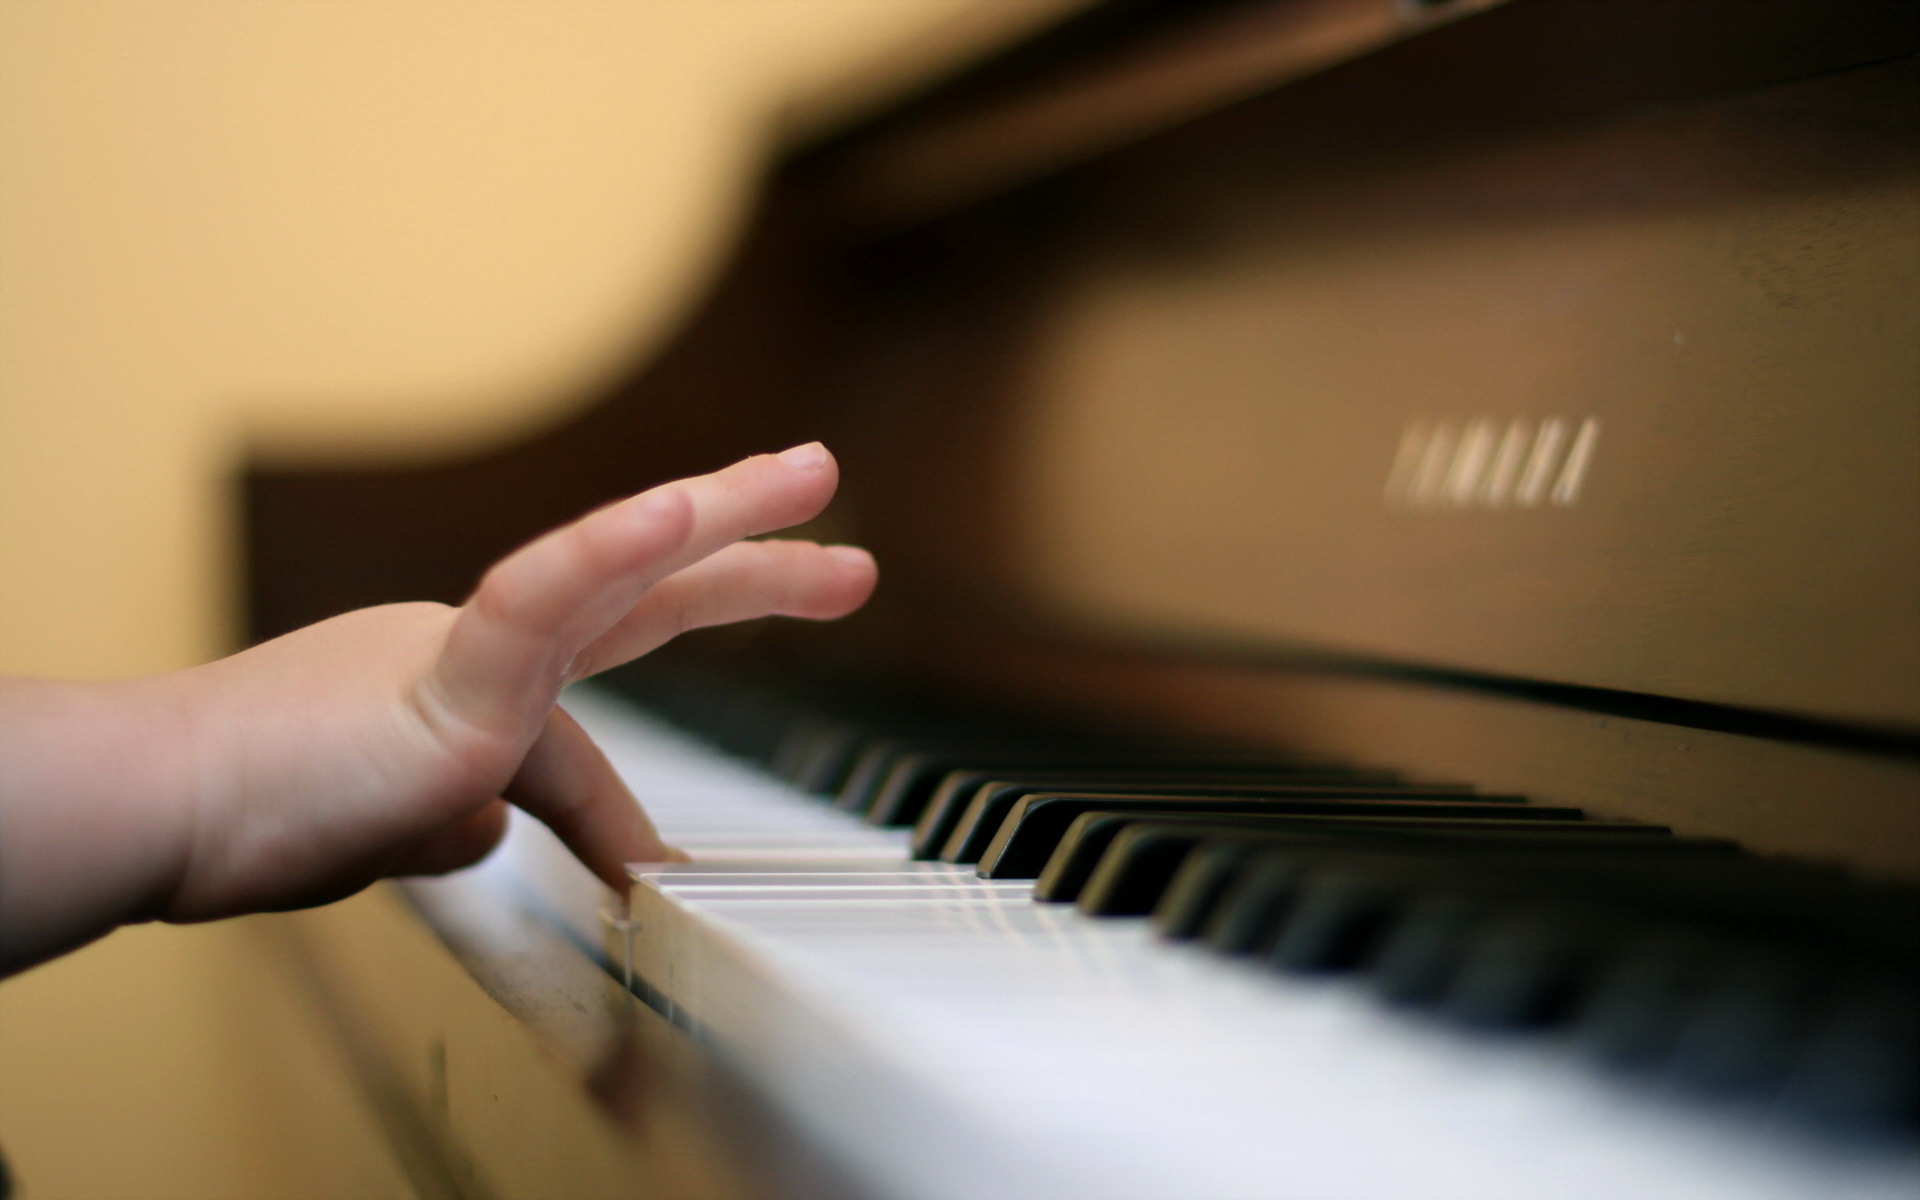 essay - my hobby is playing piano